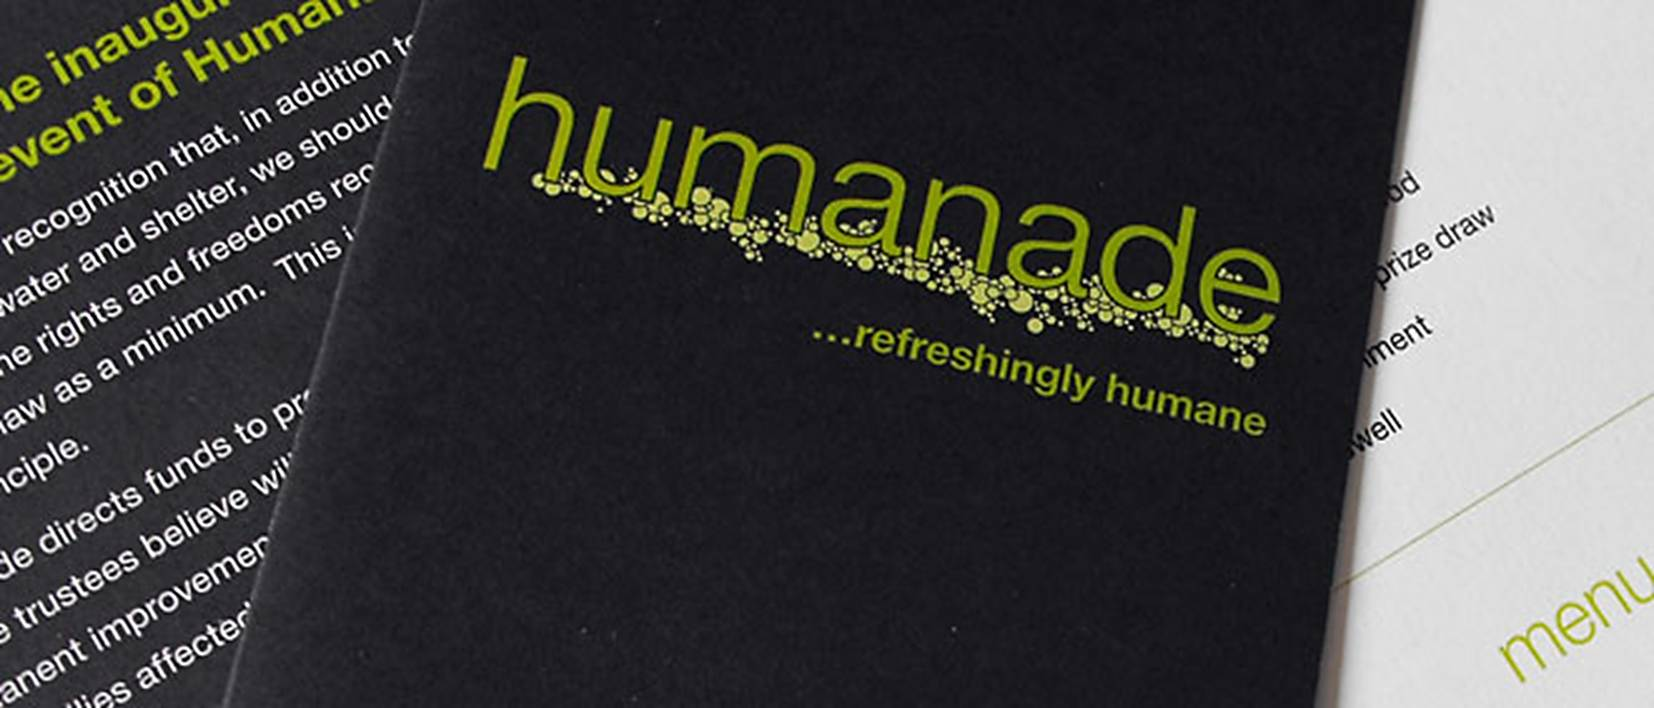 humanade logo on printed cards